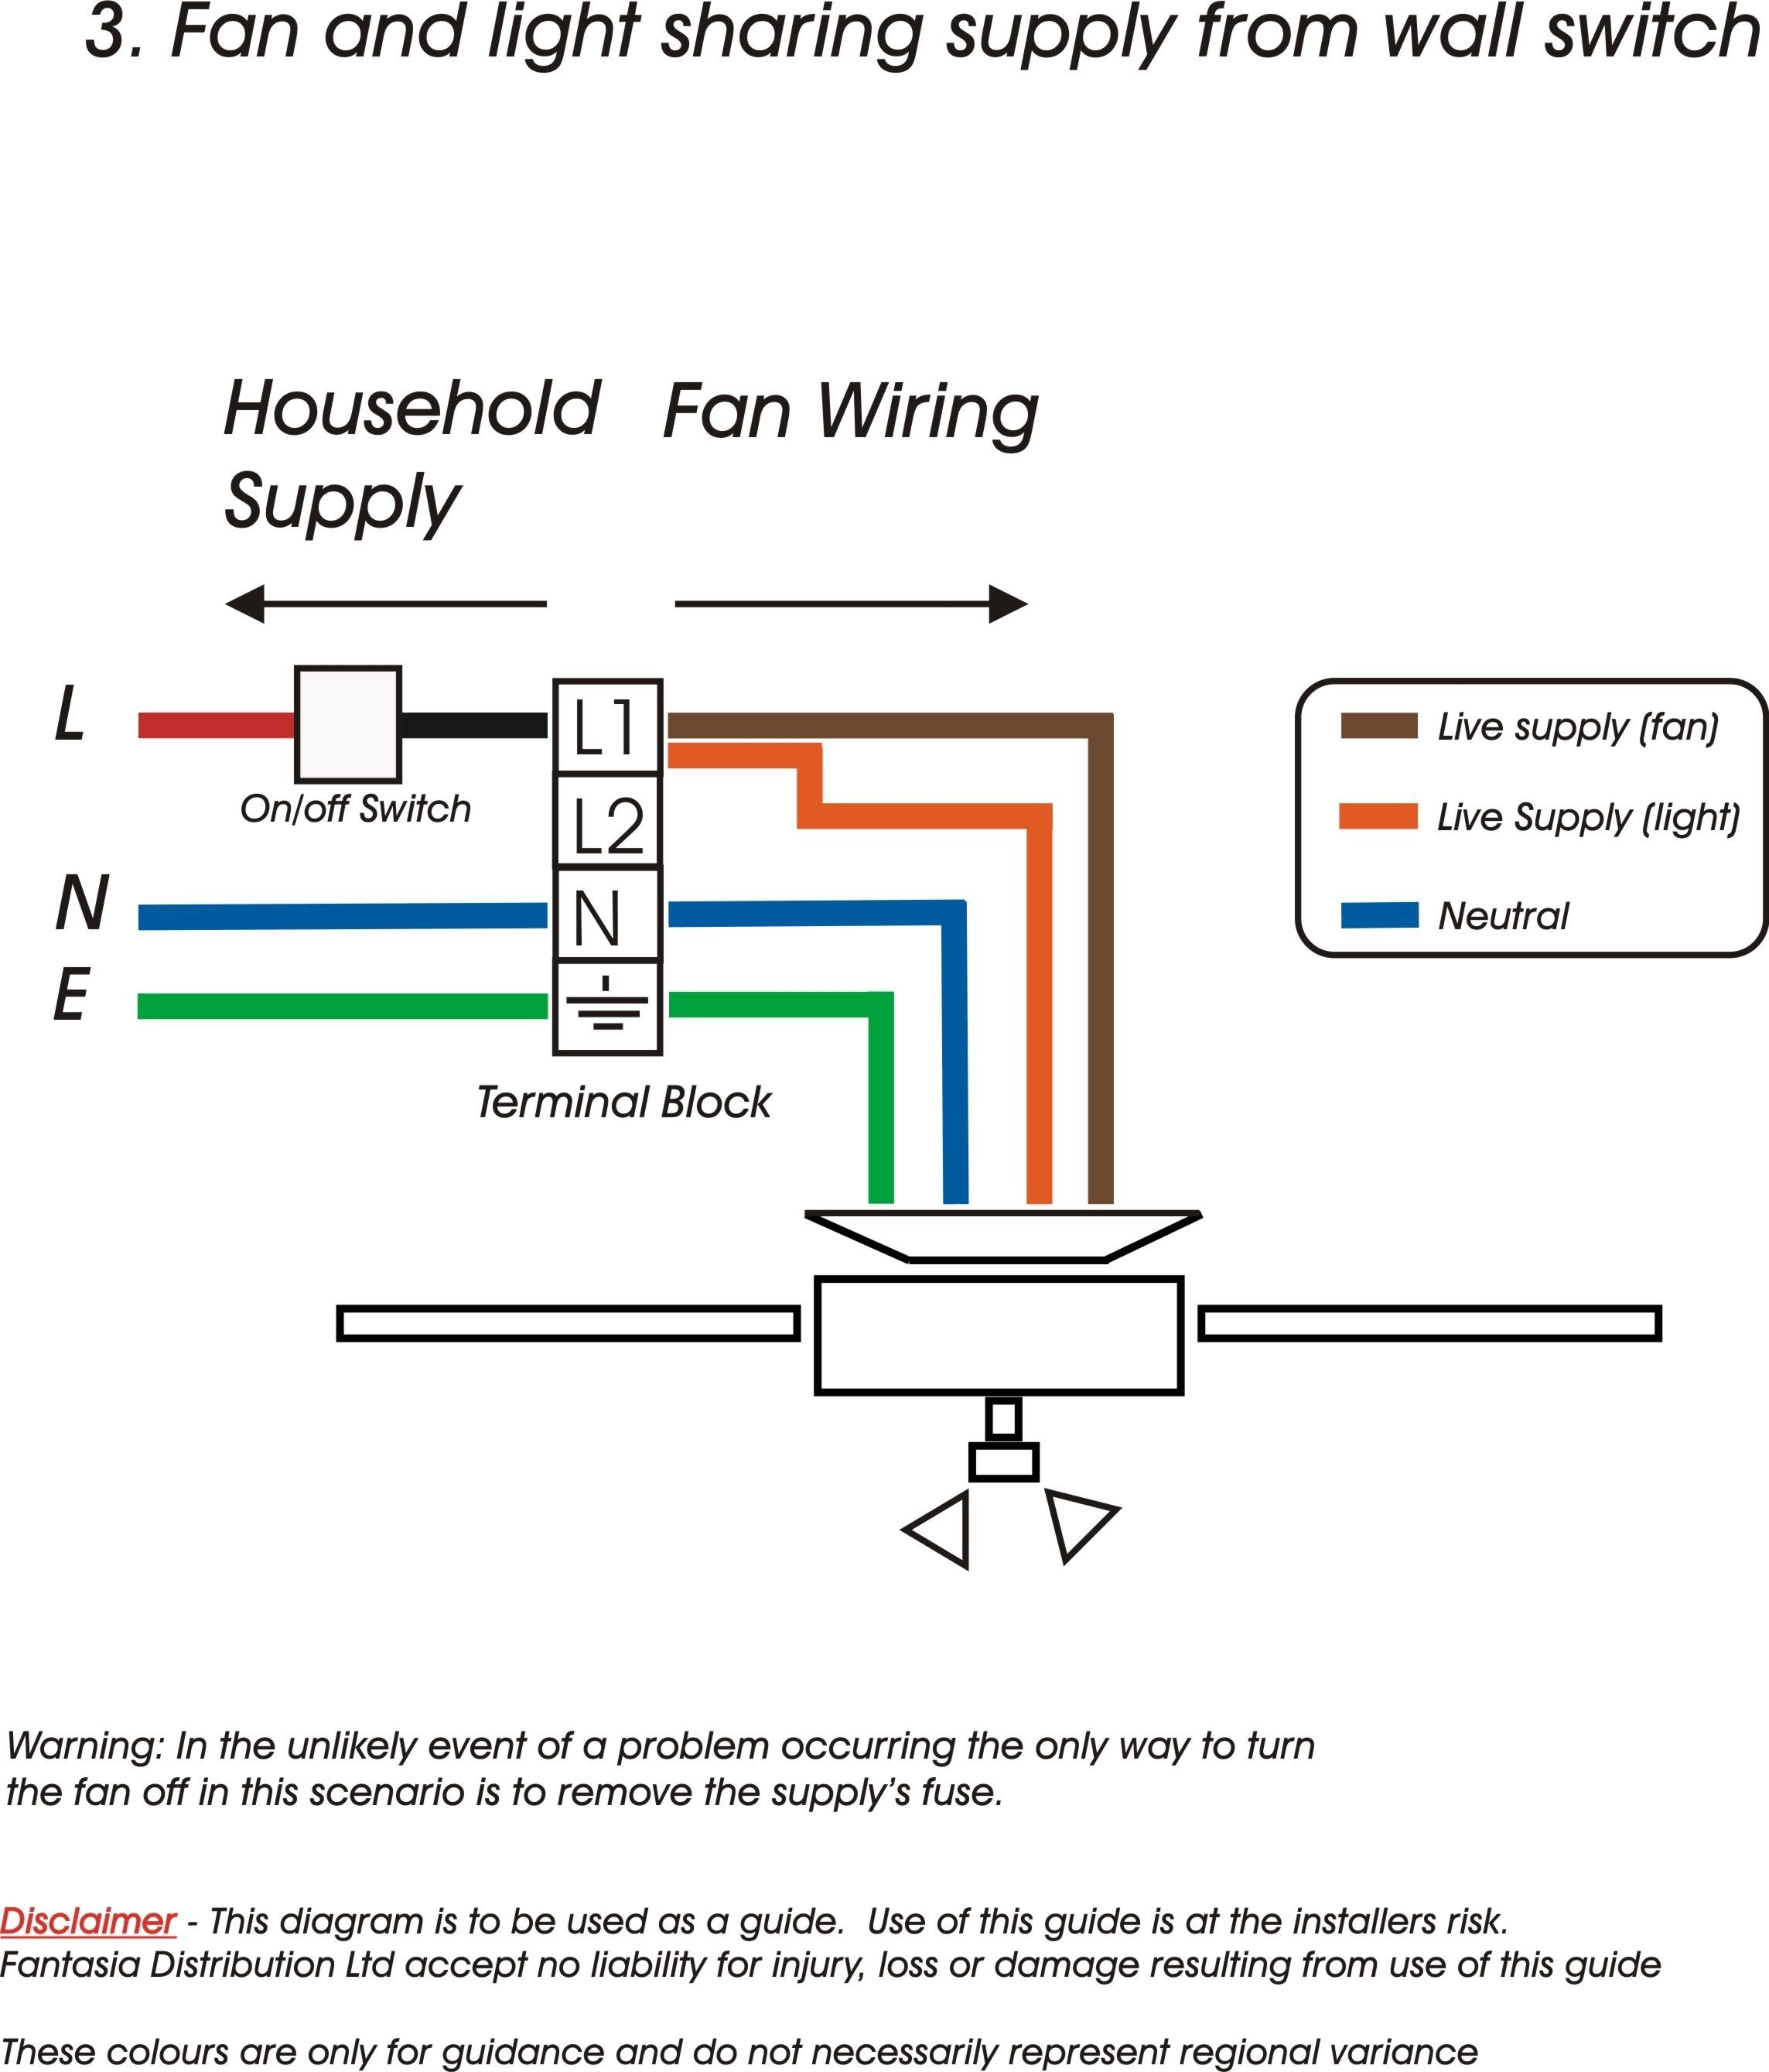 Industrial Electrical Color Codes Wiring Code House Light Colors Trusted Diagrams 2287x2678